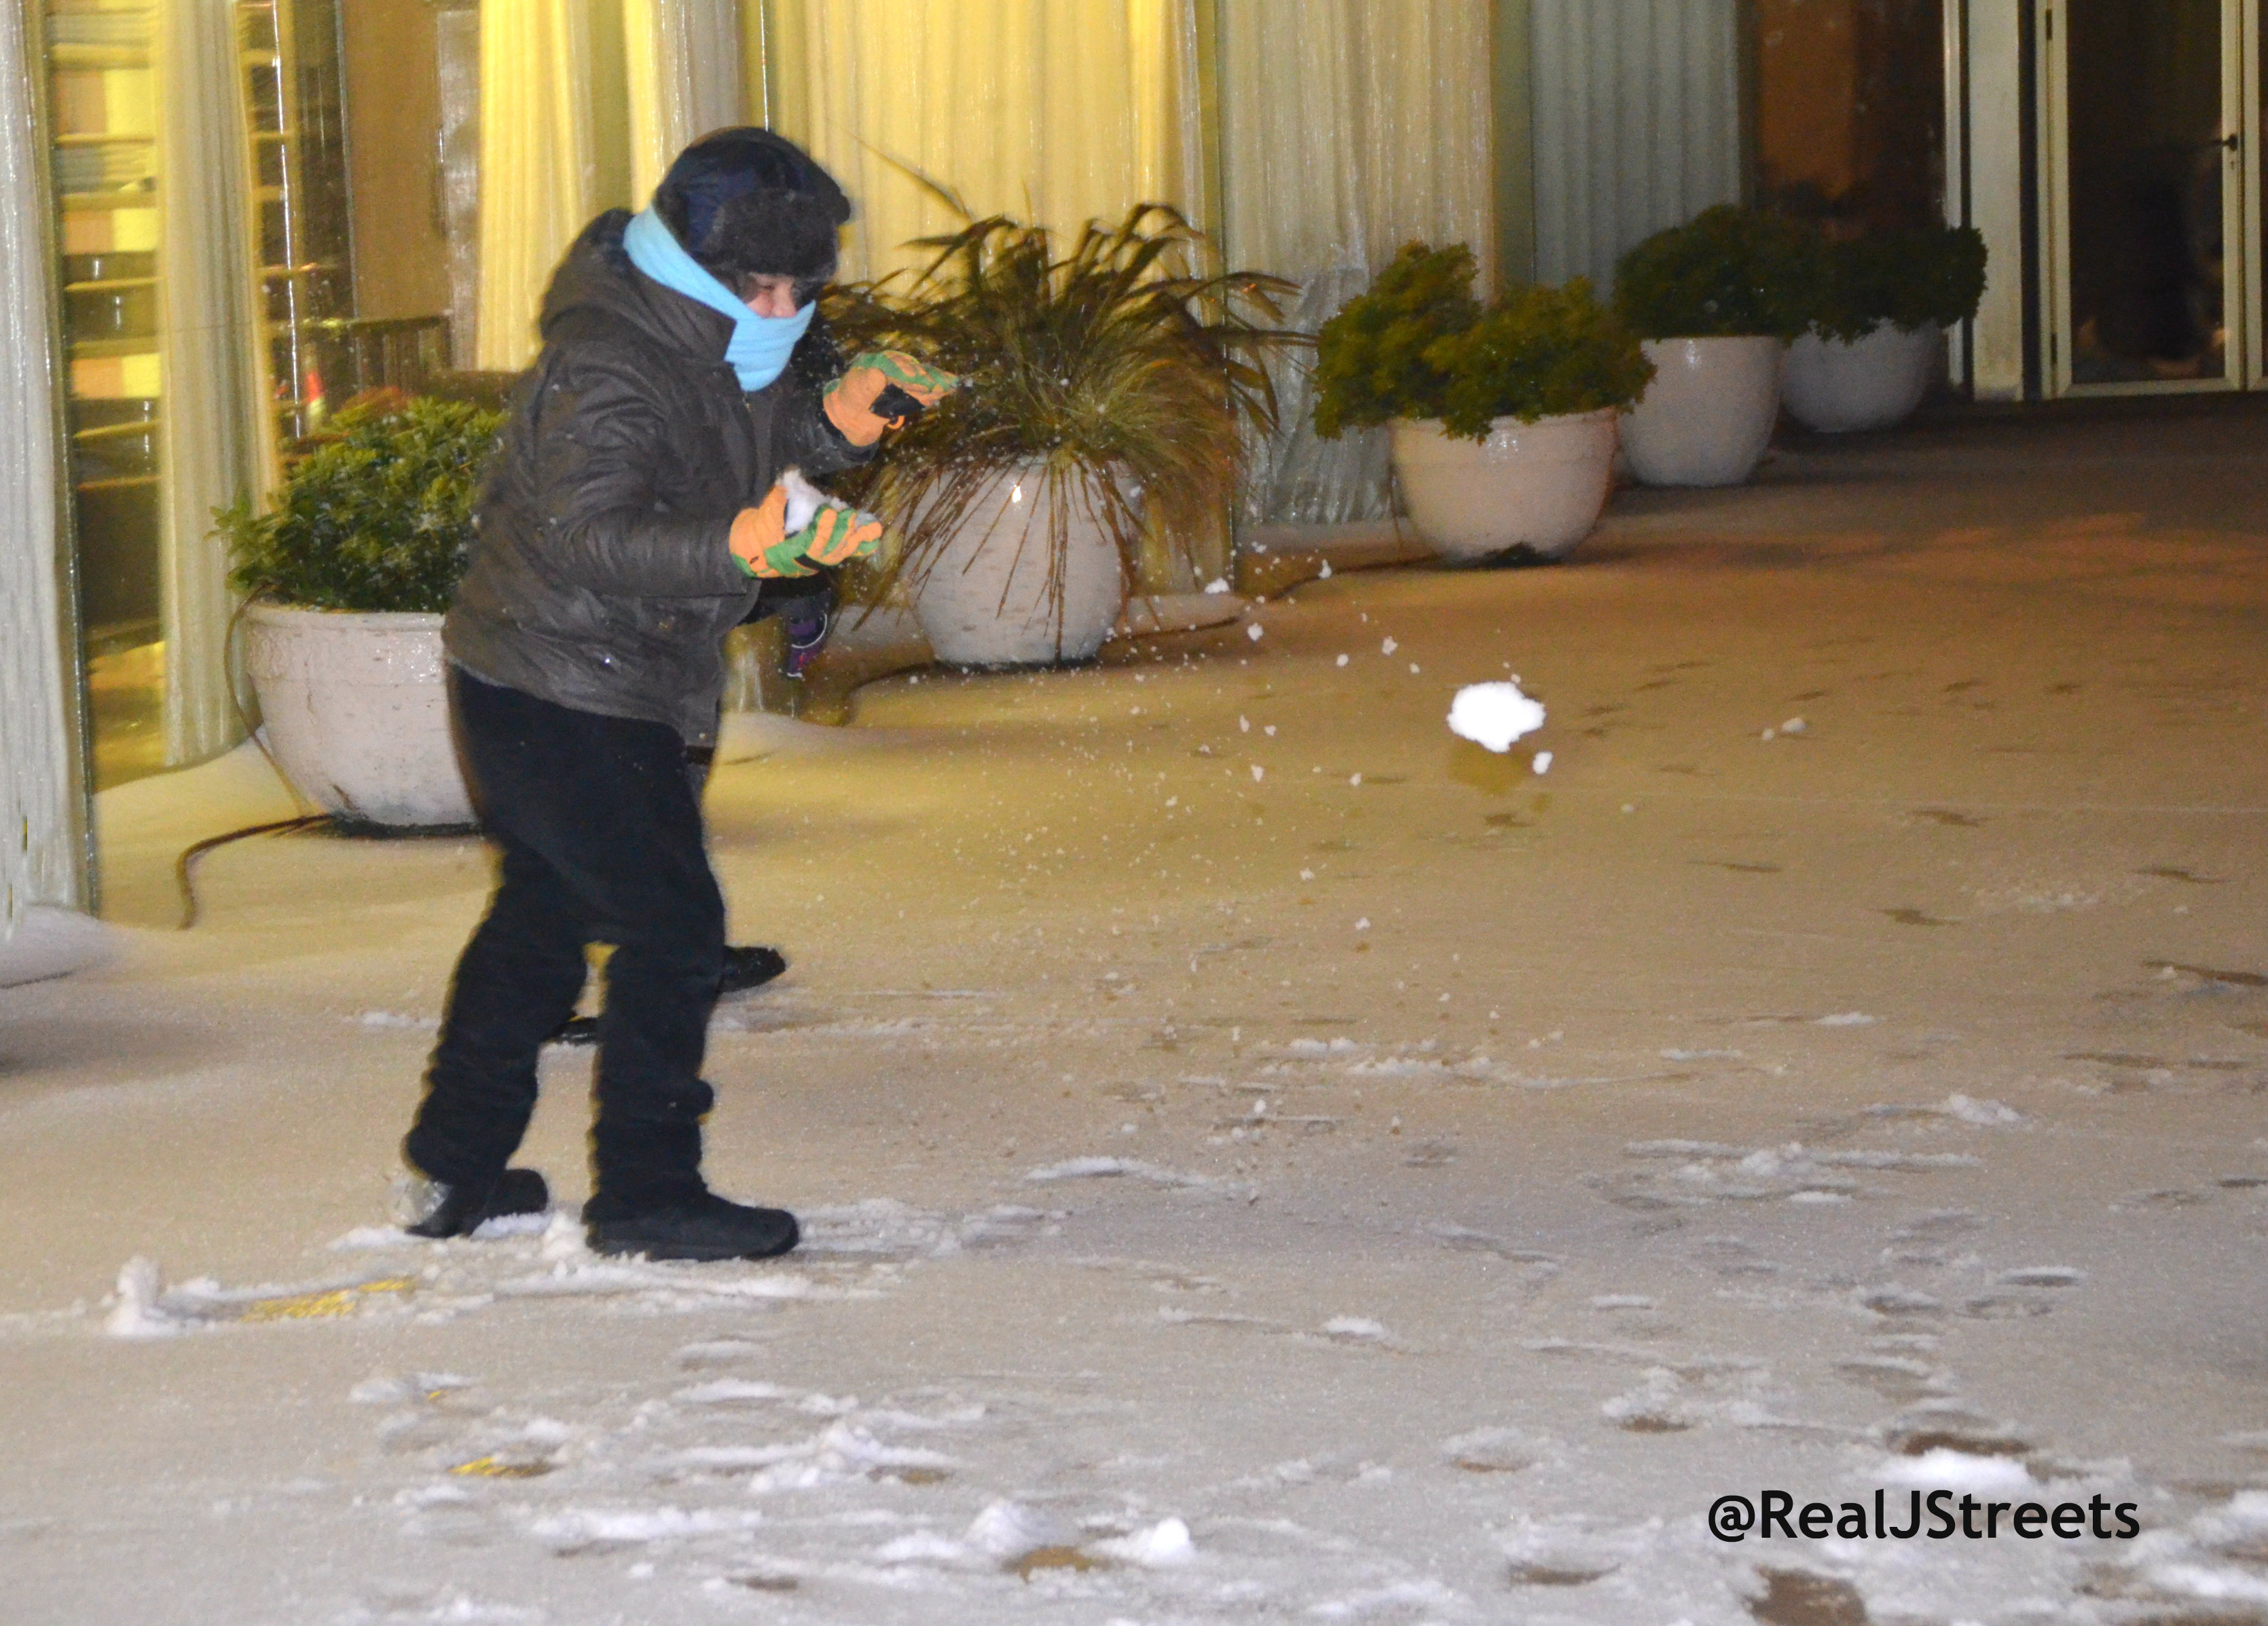 boy throwing snowball in Jerusalem